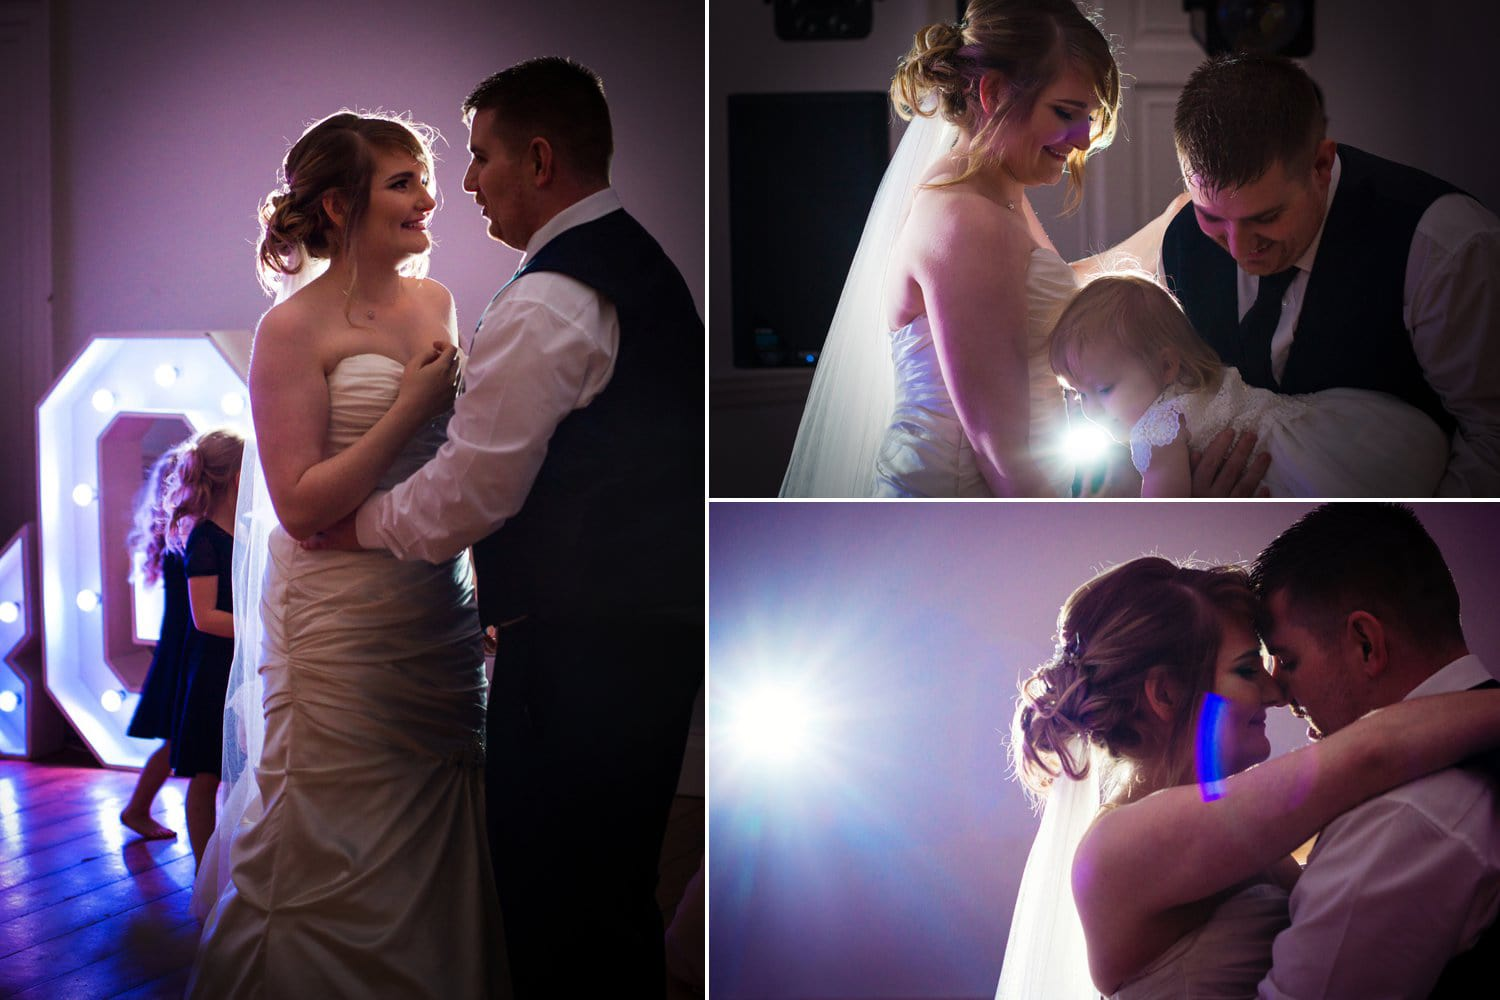 Hexham Abbey Wedding, first dance